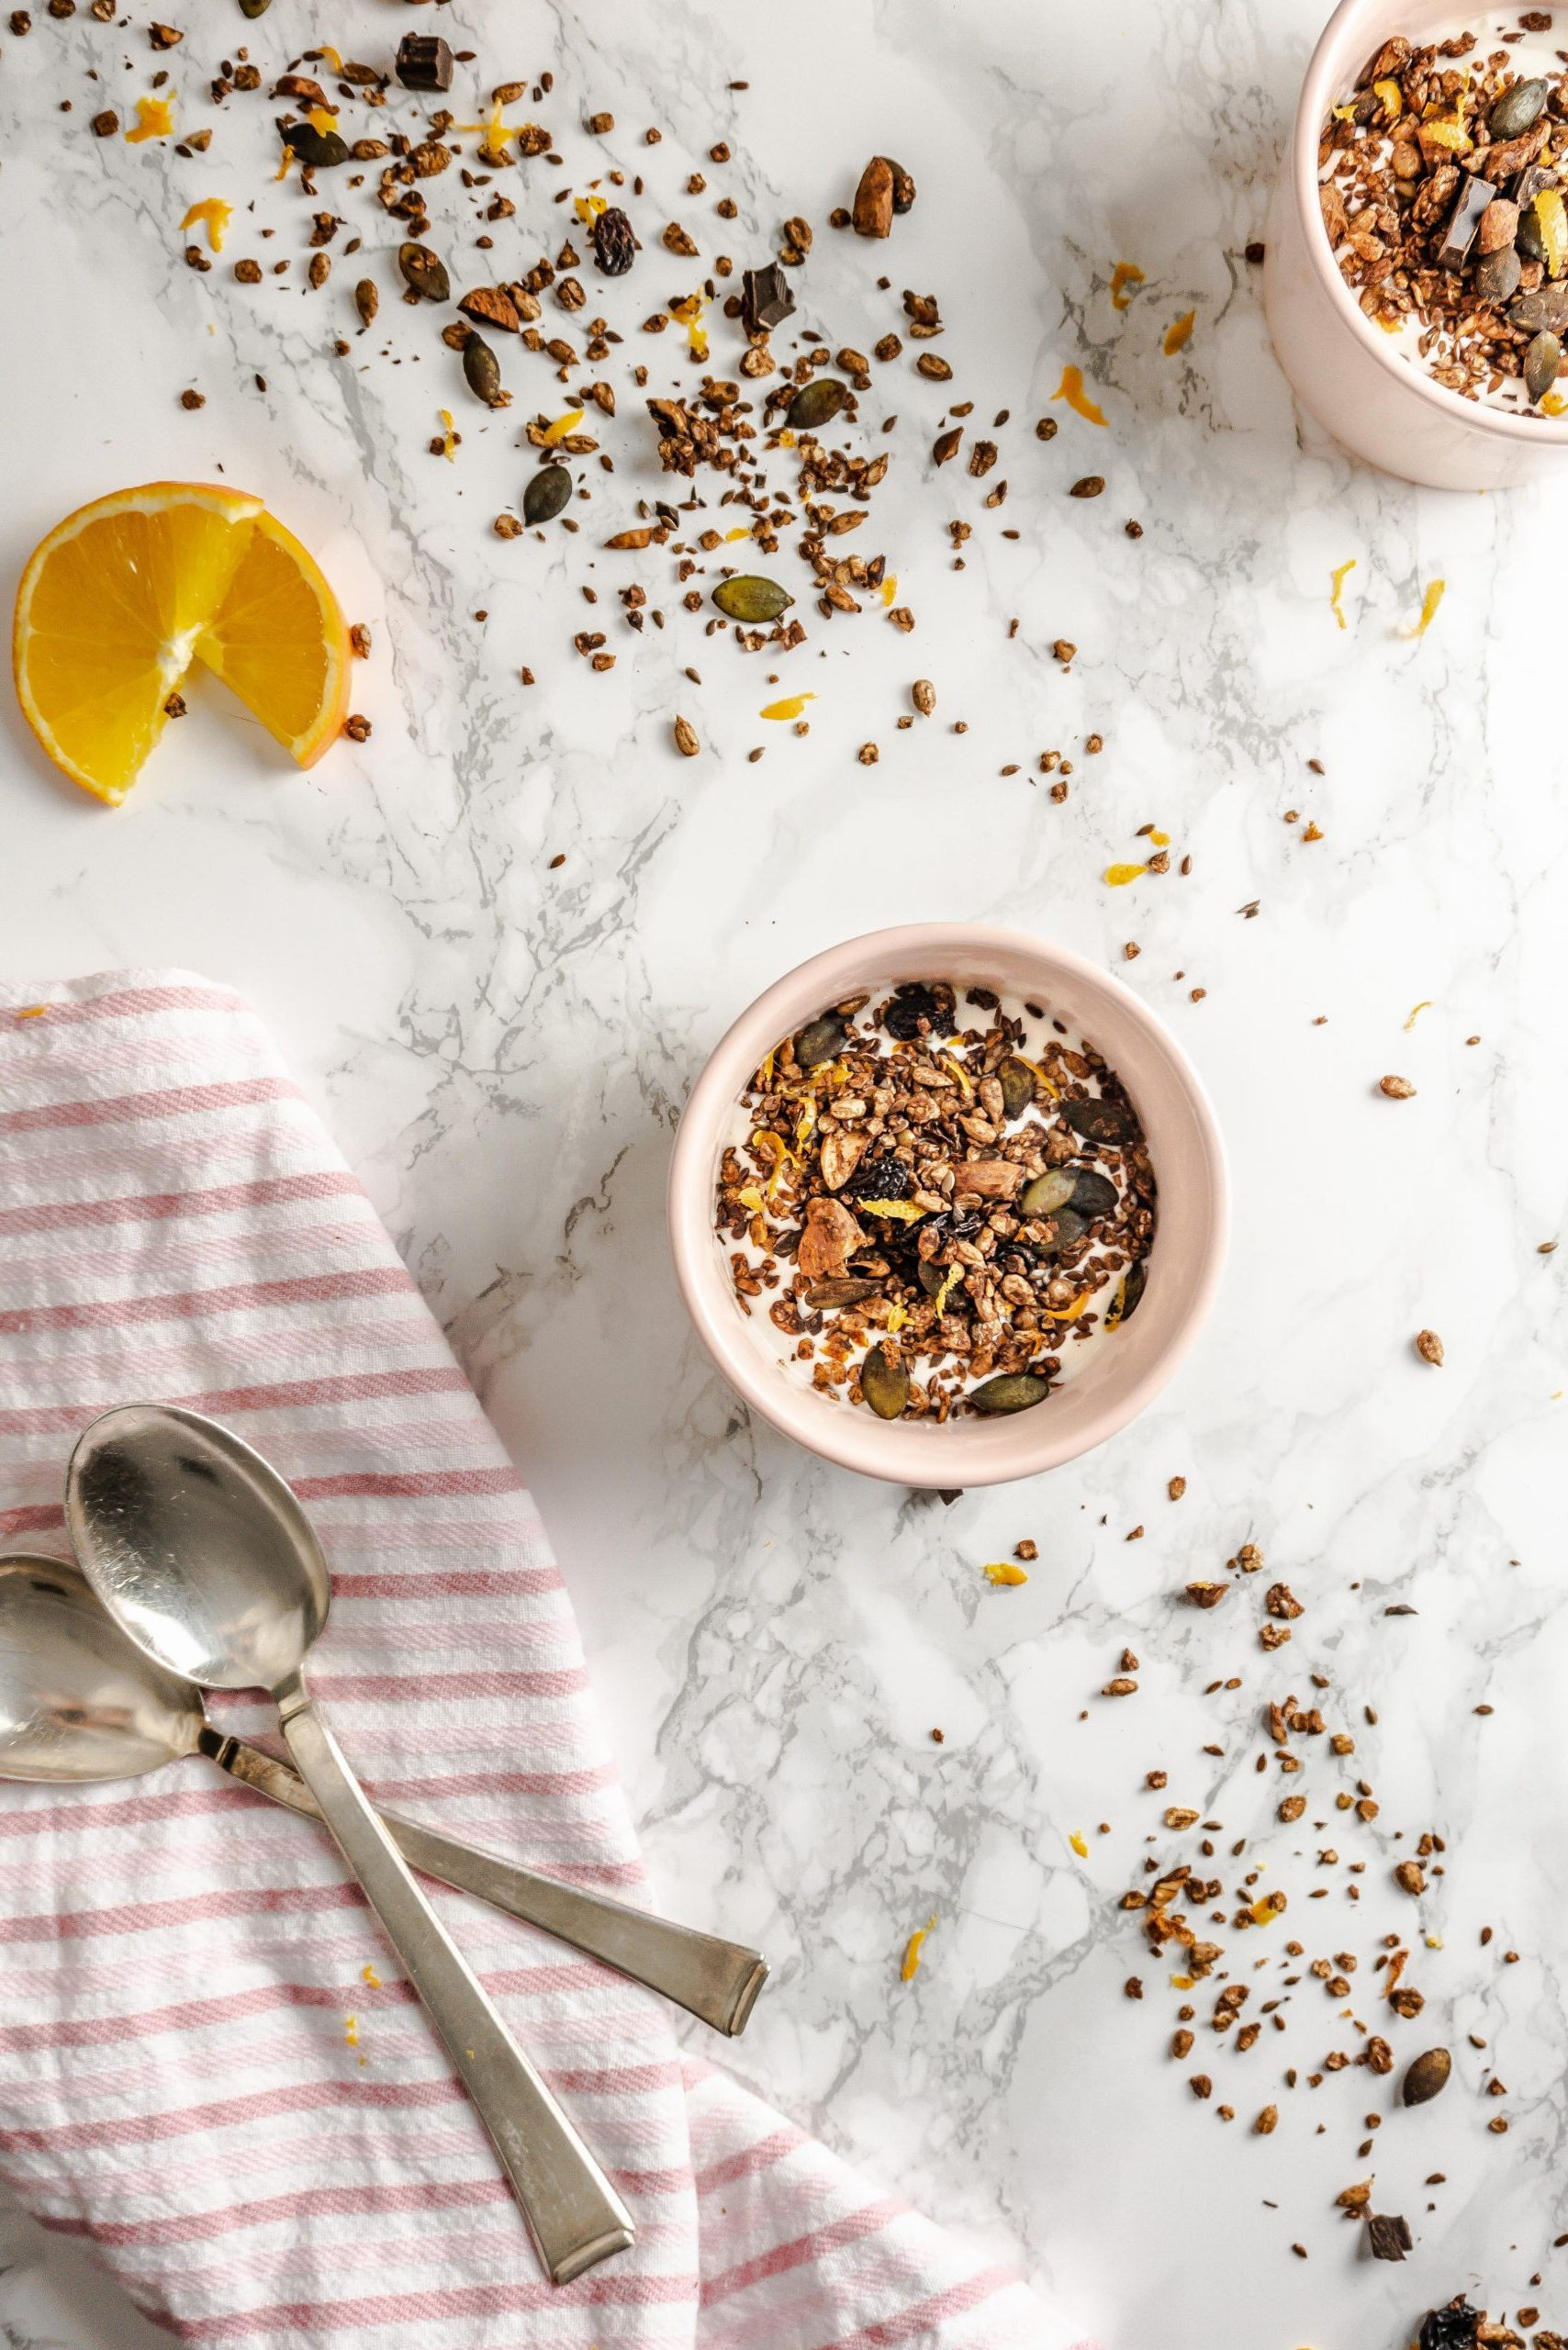 Chocolate Orange Granola strewn on a marble background and in two small bowls with yoghurt surrounded by spoons, a kitchen towel, and sliced oranges photographed from the top